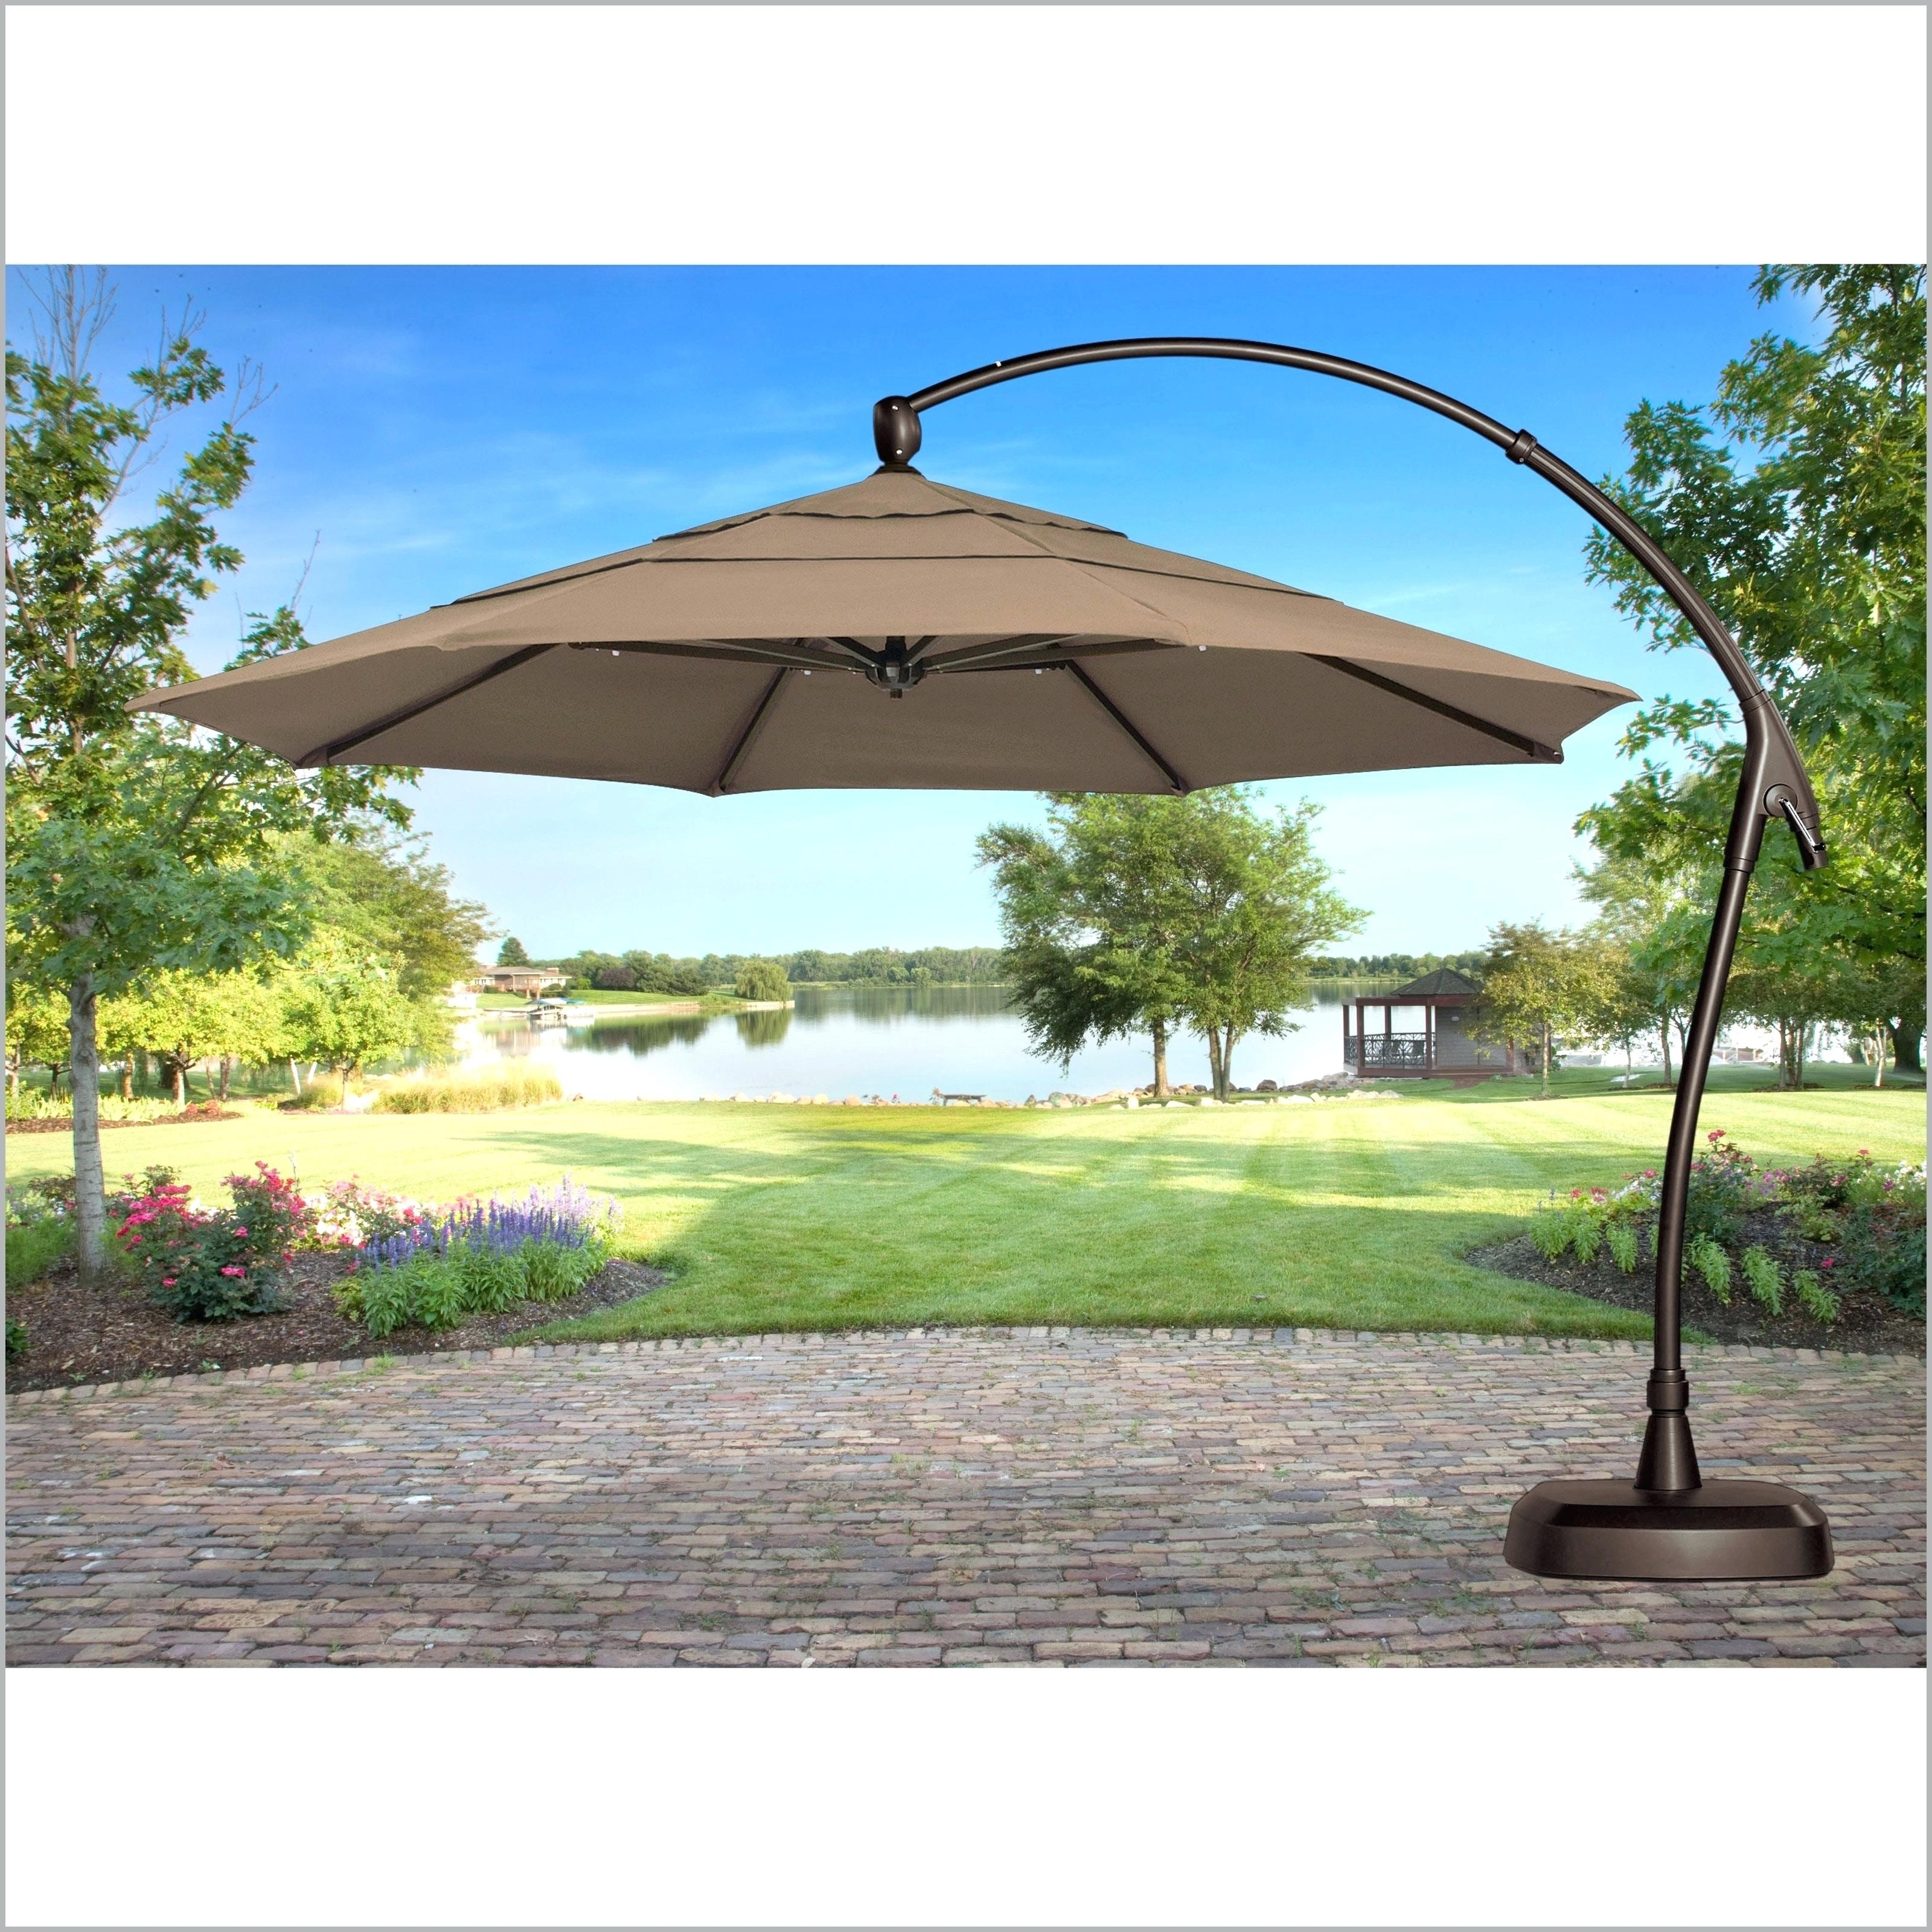 Lowes Umbrella Base Patio Umbrellas With Lights Table Pics – Mrze In Popular Patio Umbrellas At Lowes (View 8 of 20)